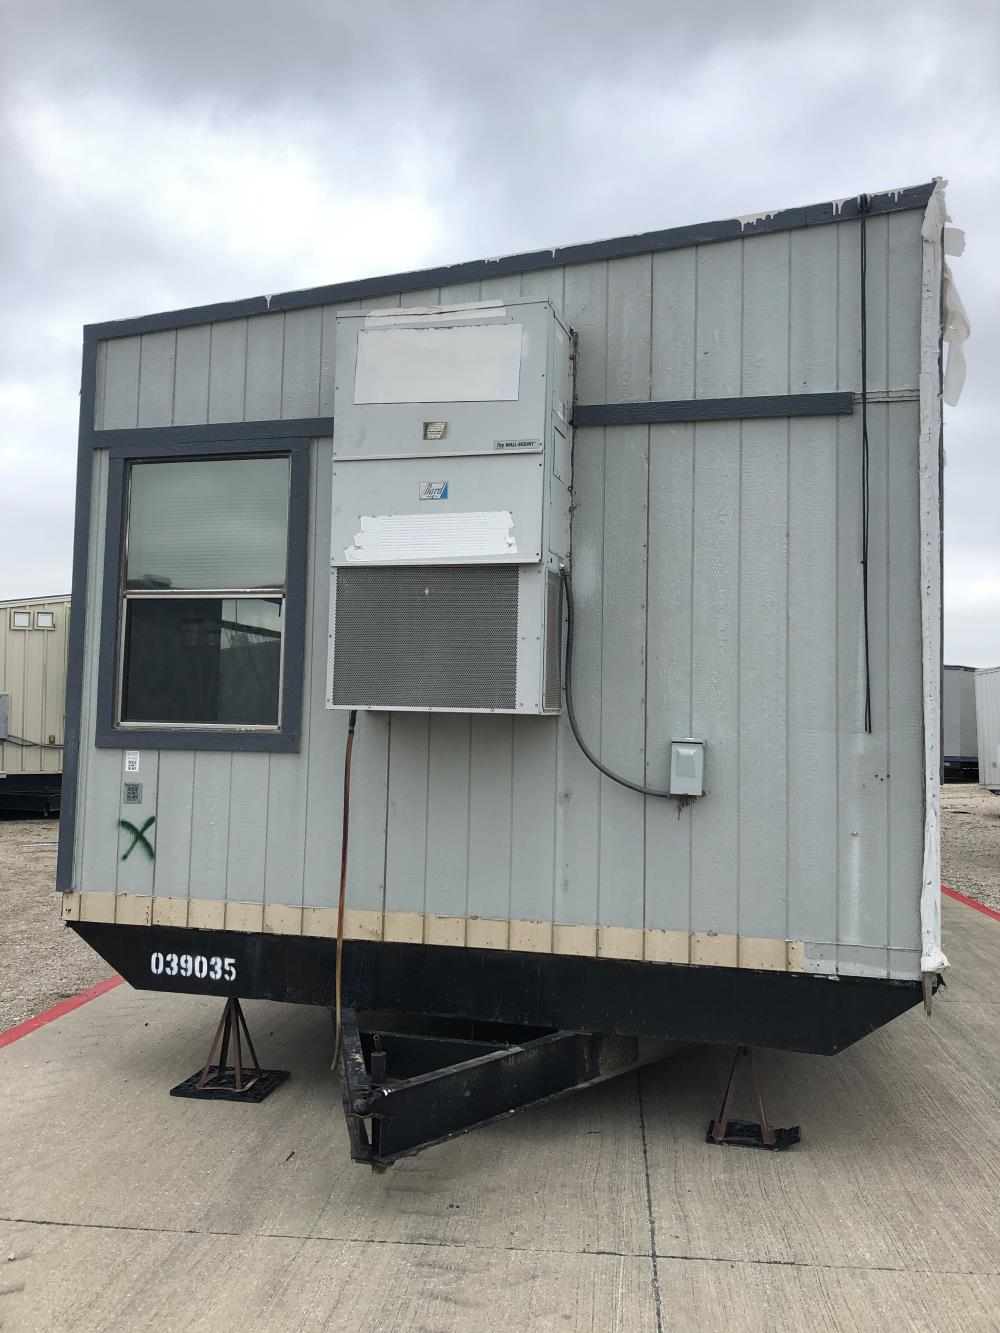 64'x28' Section Modular for sale in Dallas North - CPX-108255 -4